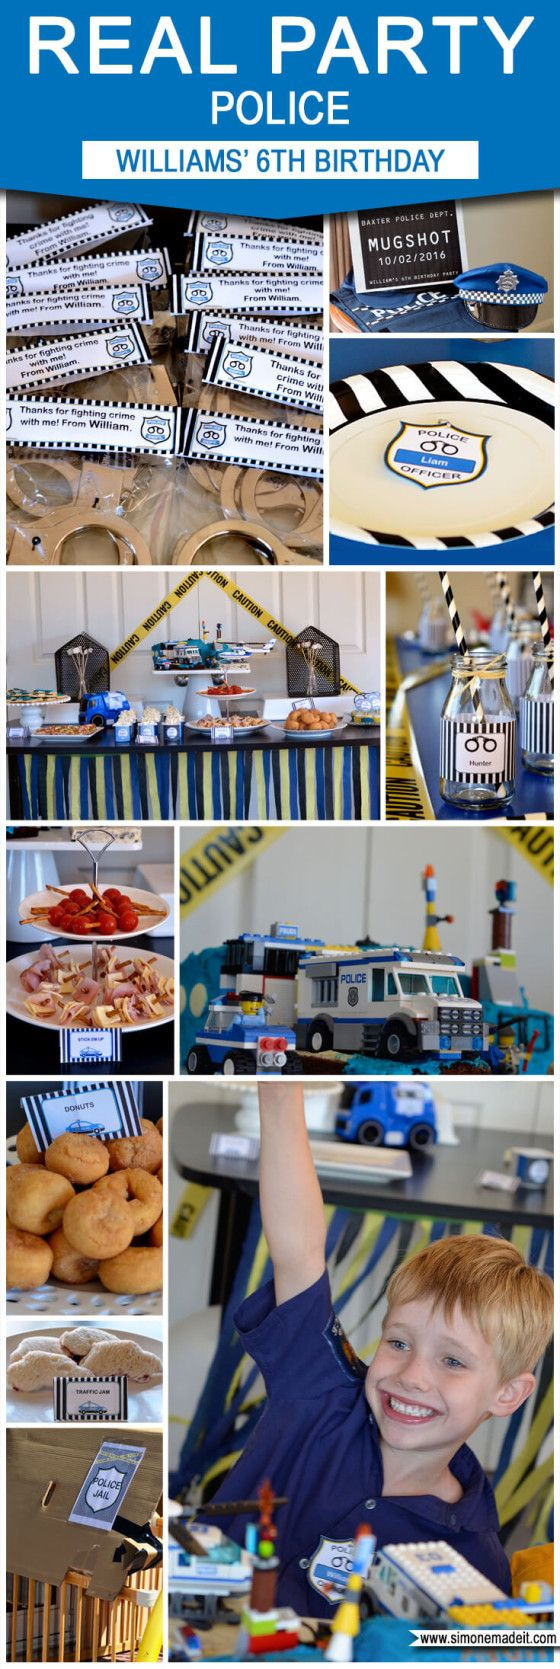 Williams' 6th Police Birthday Party | Police Birthday Party Ideas More